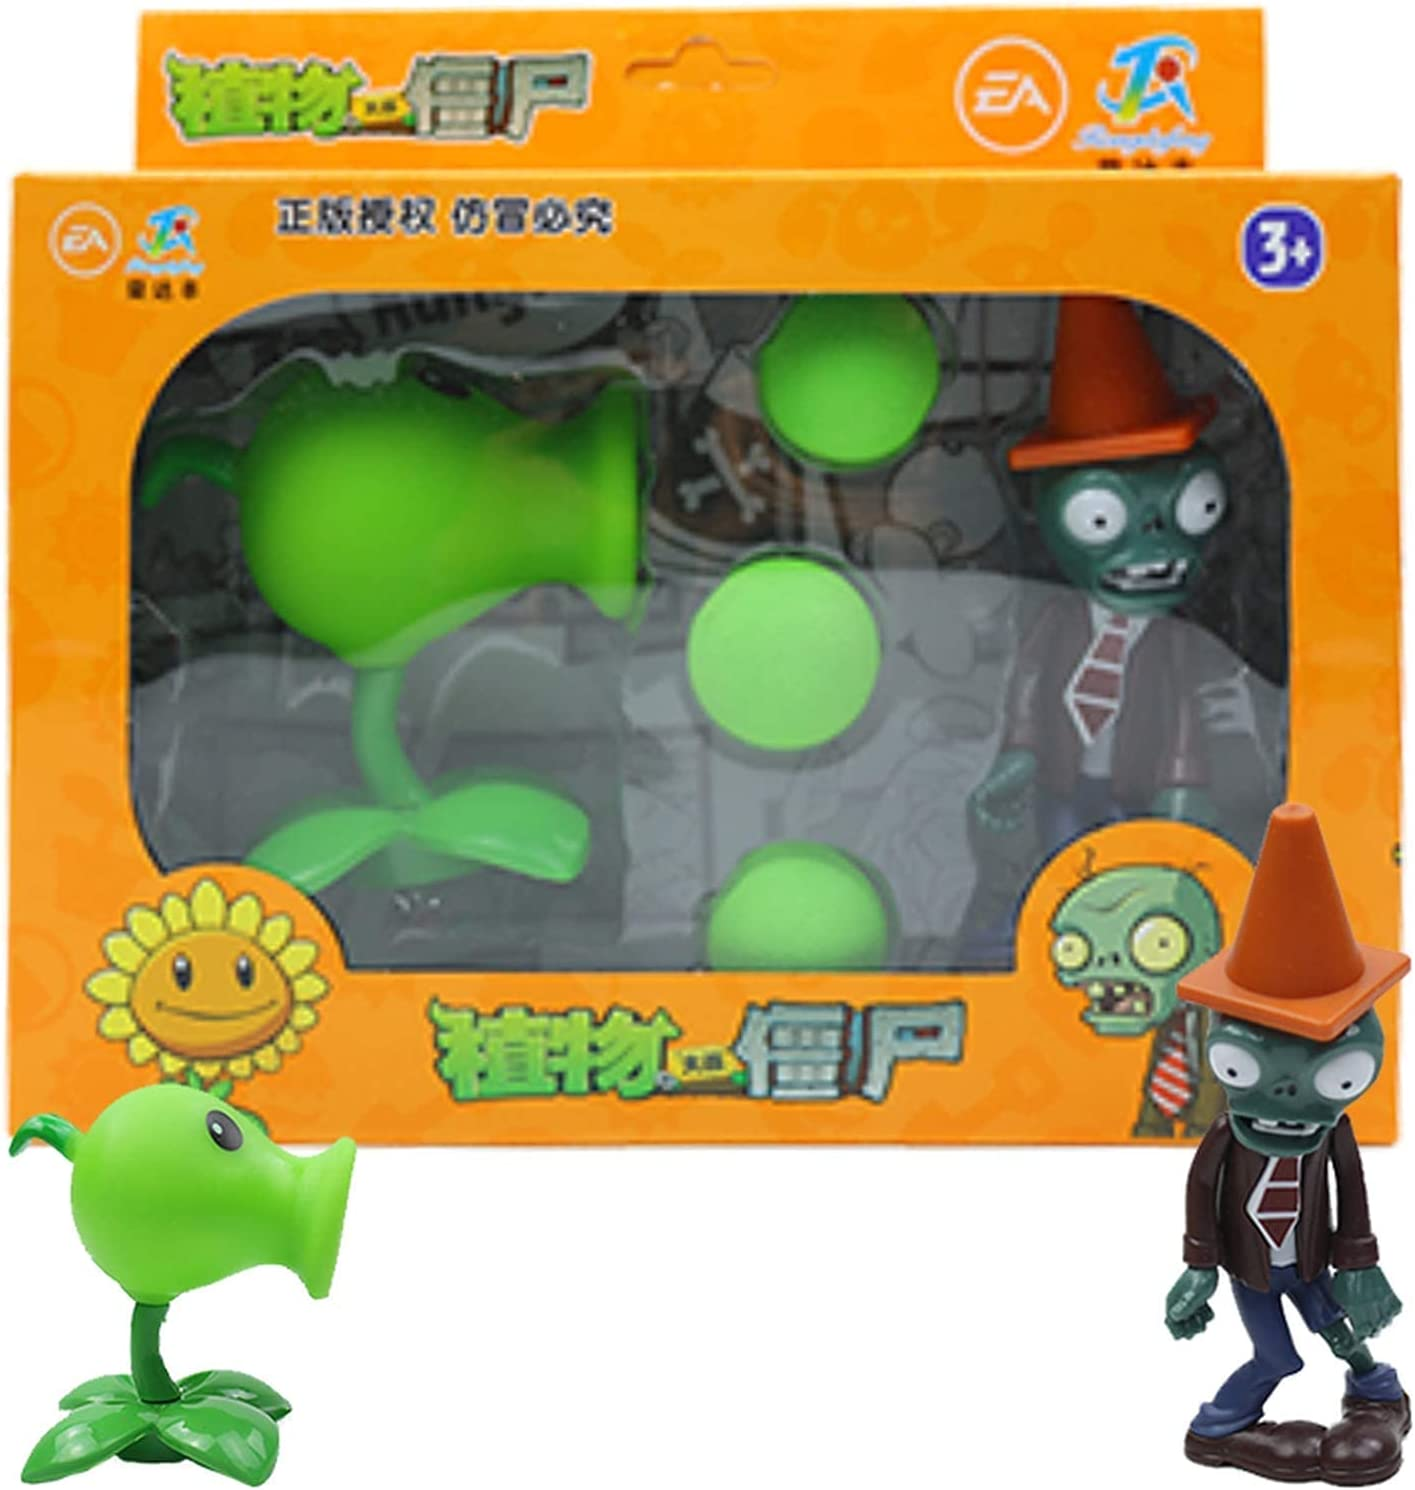 ZJSXIA Clearance SALE Limited time New Popular PVZ Plants Vs Zombies Finally resale start PVC Peashooter F Action